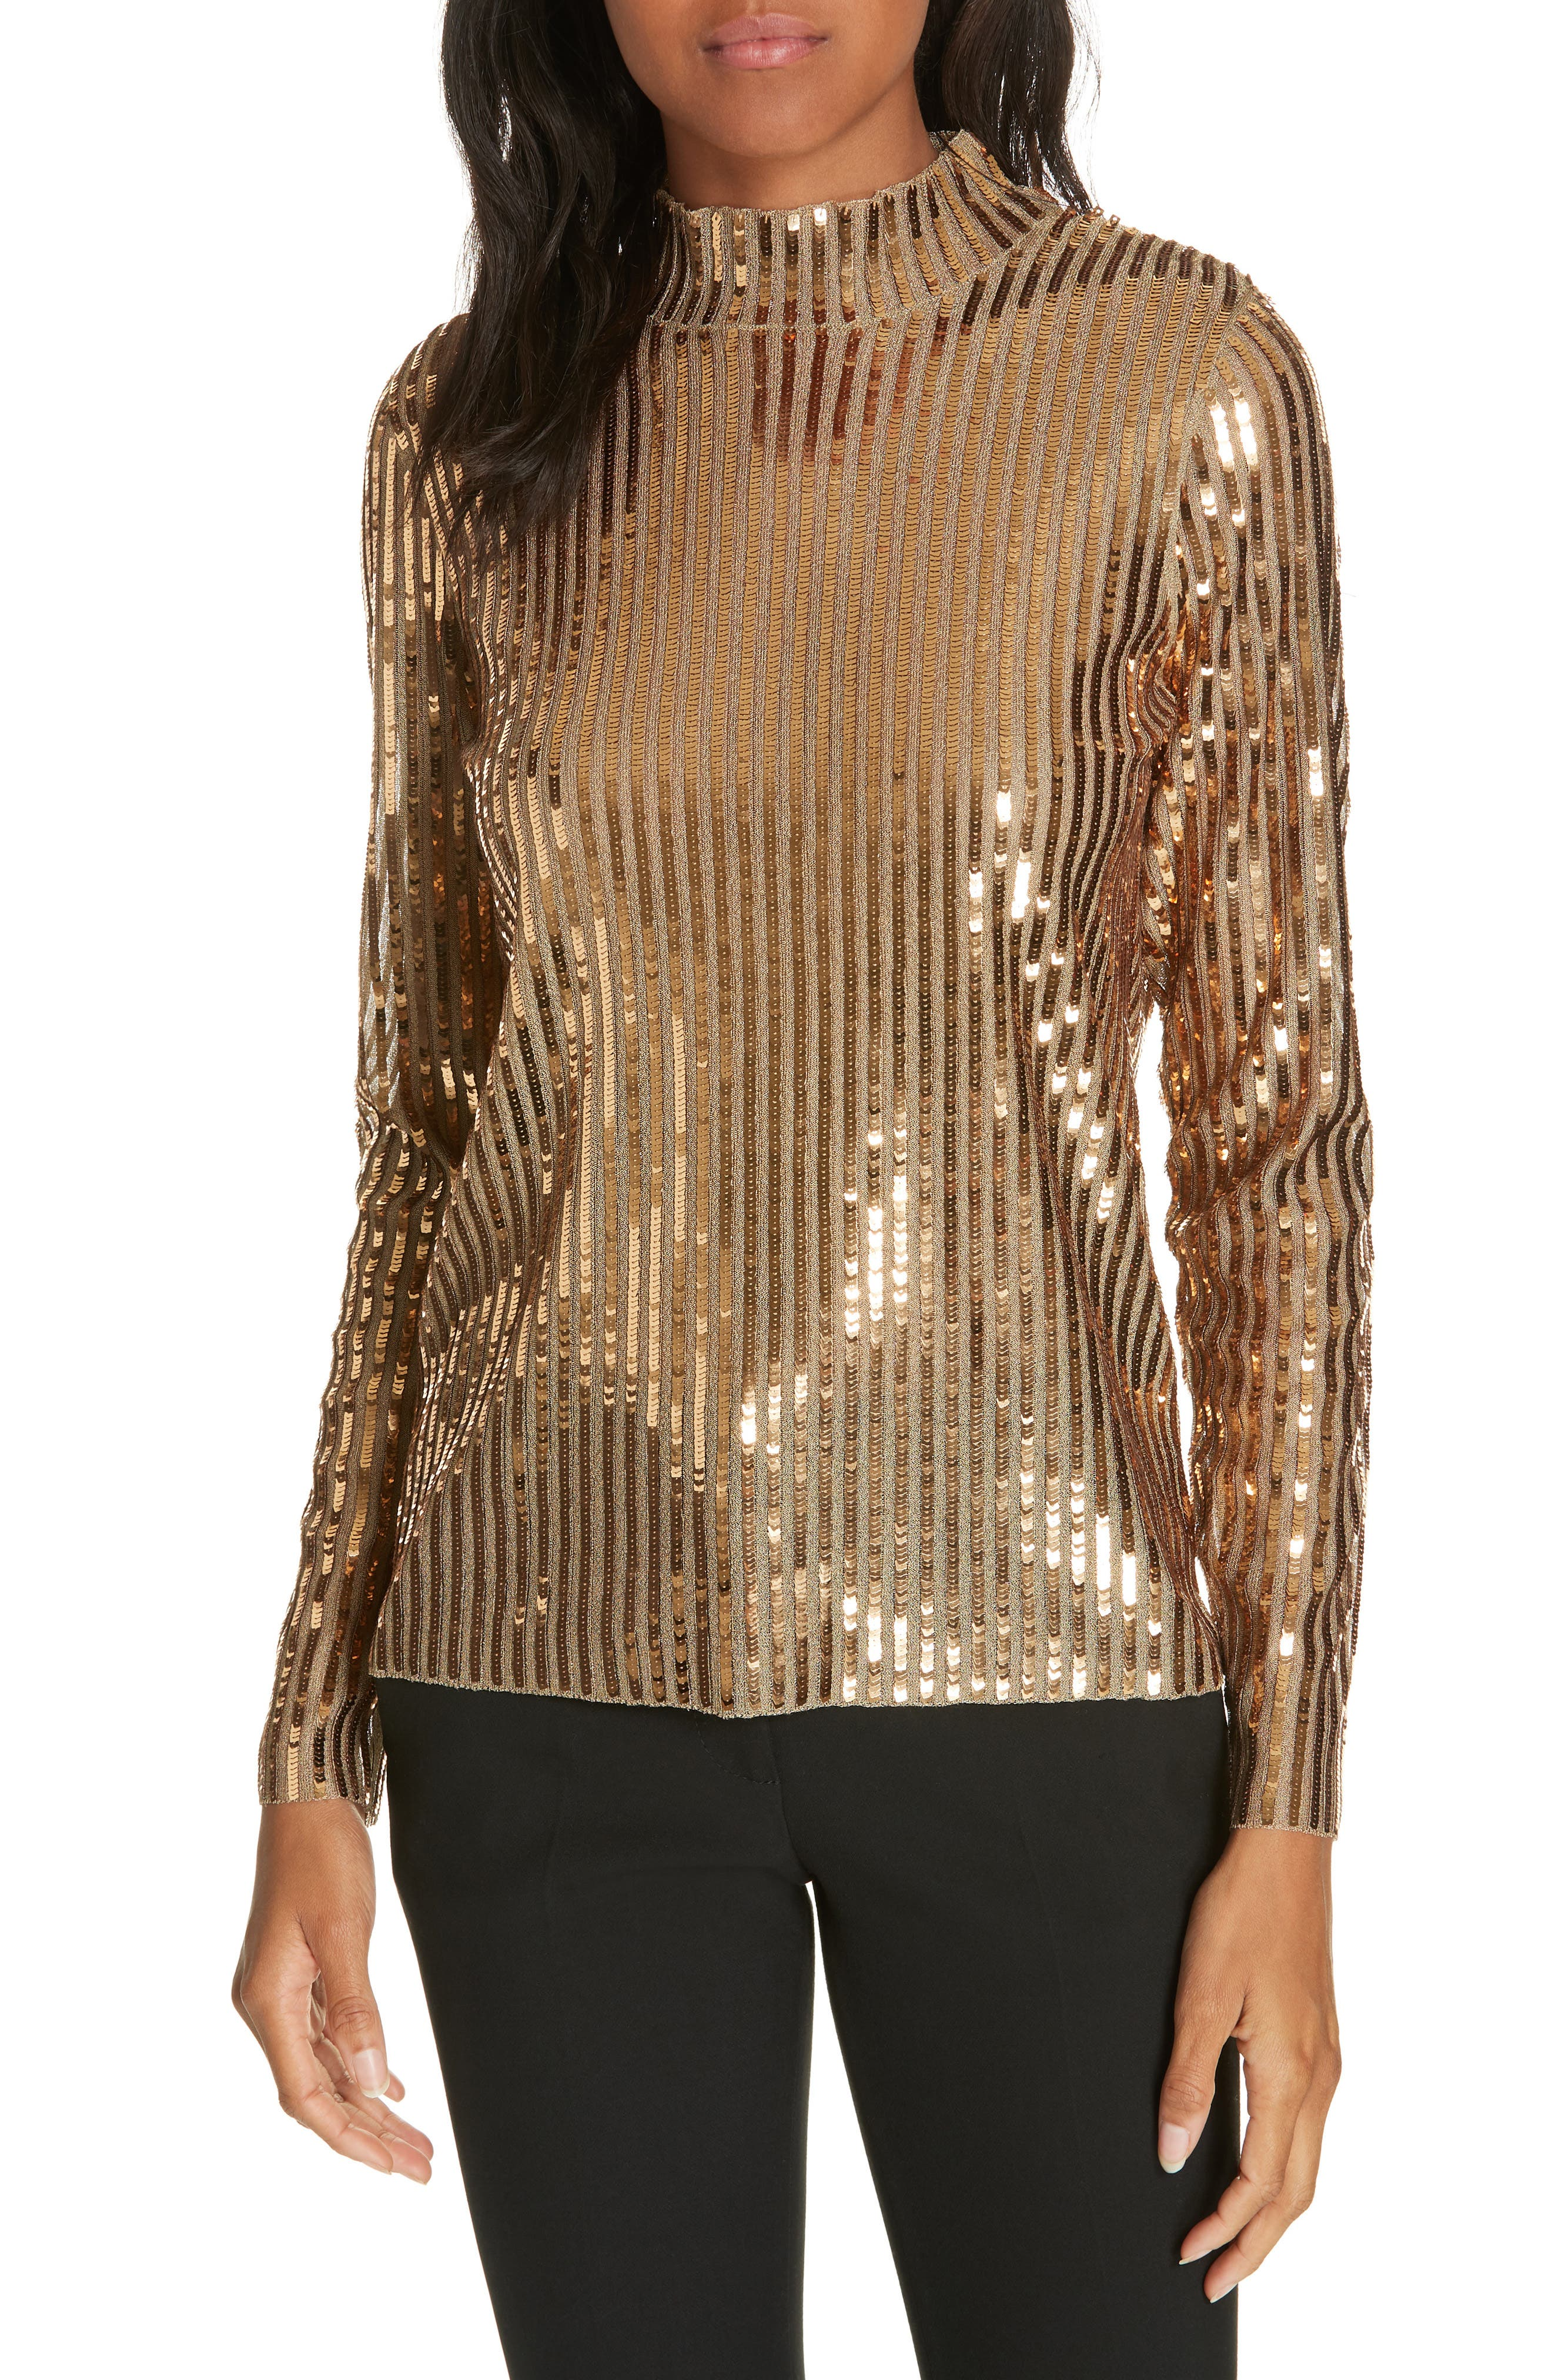 TANYA TAYLOR, Grace Gold Sequins Top, Main thumbnail 1, color, 712